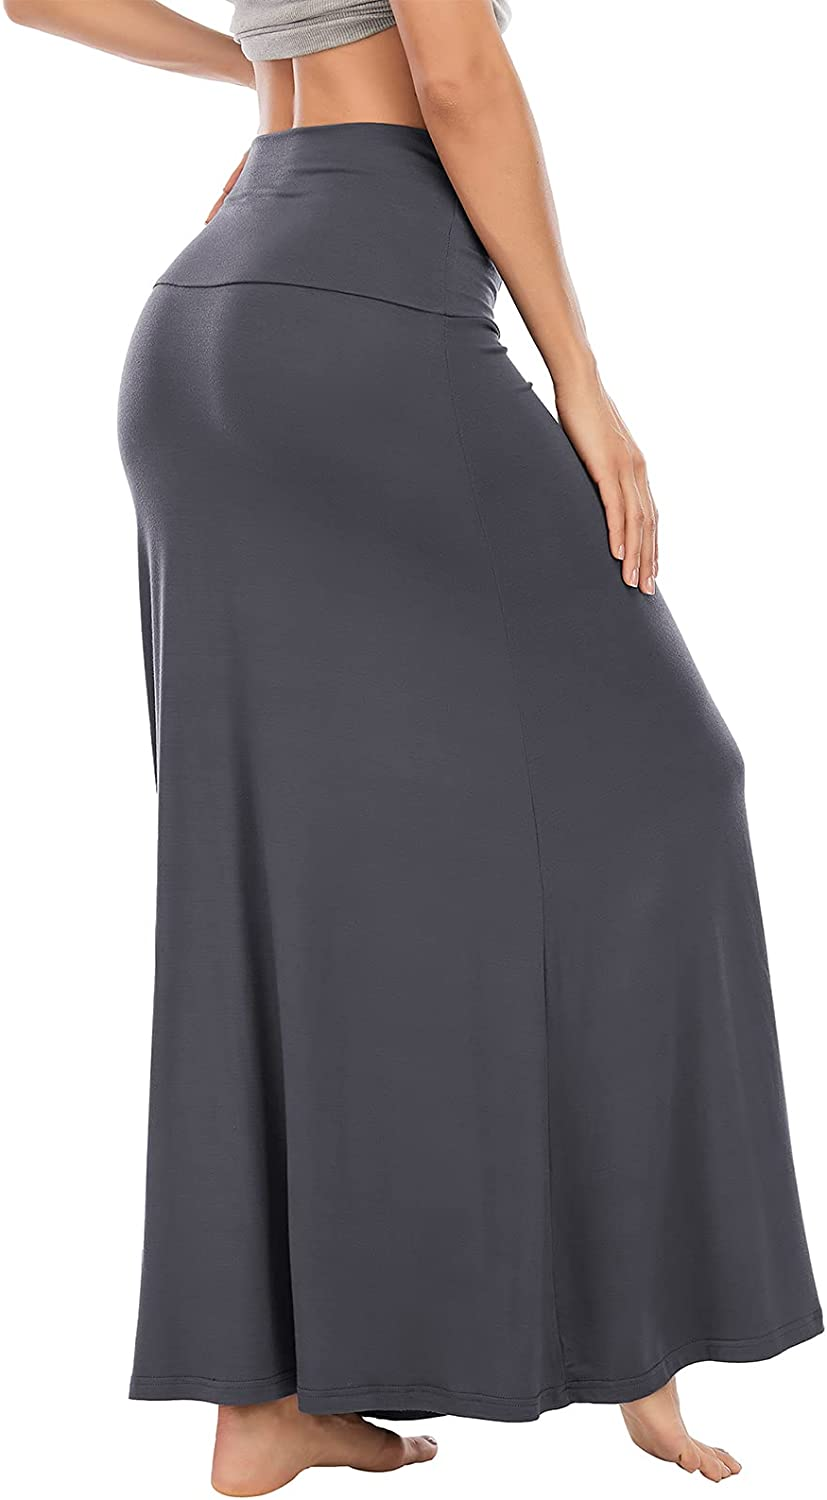 Durio Maxi Skirt Casual Stretchy Long Skirts for Women High Waisted Stylish Flare Black Skirt